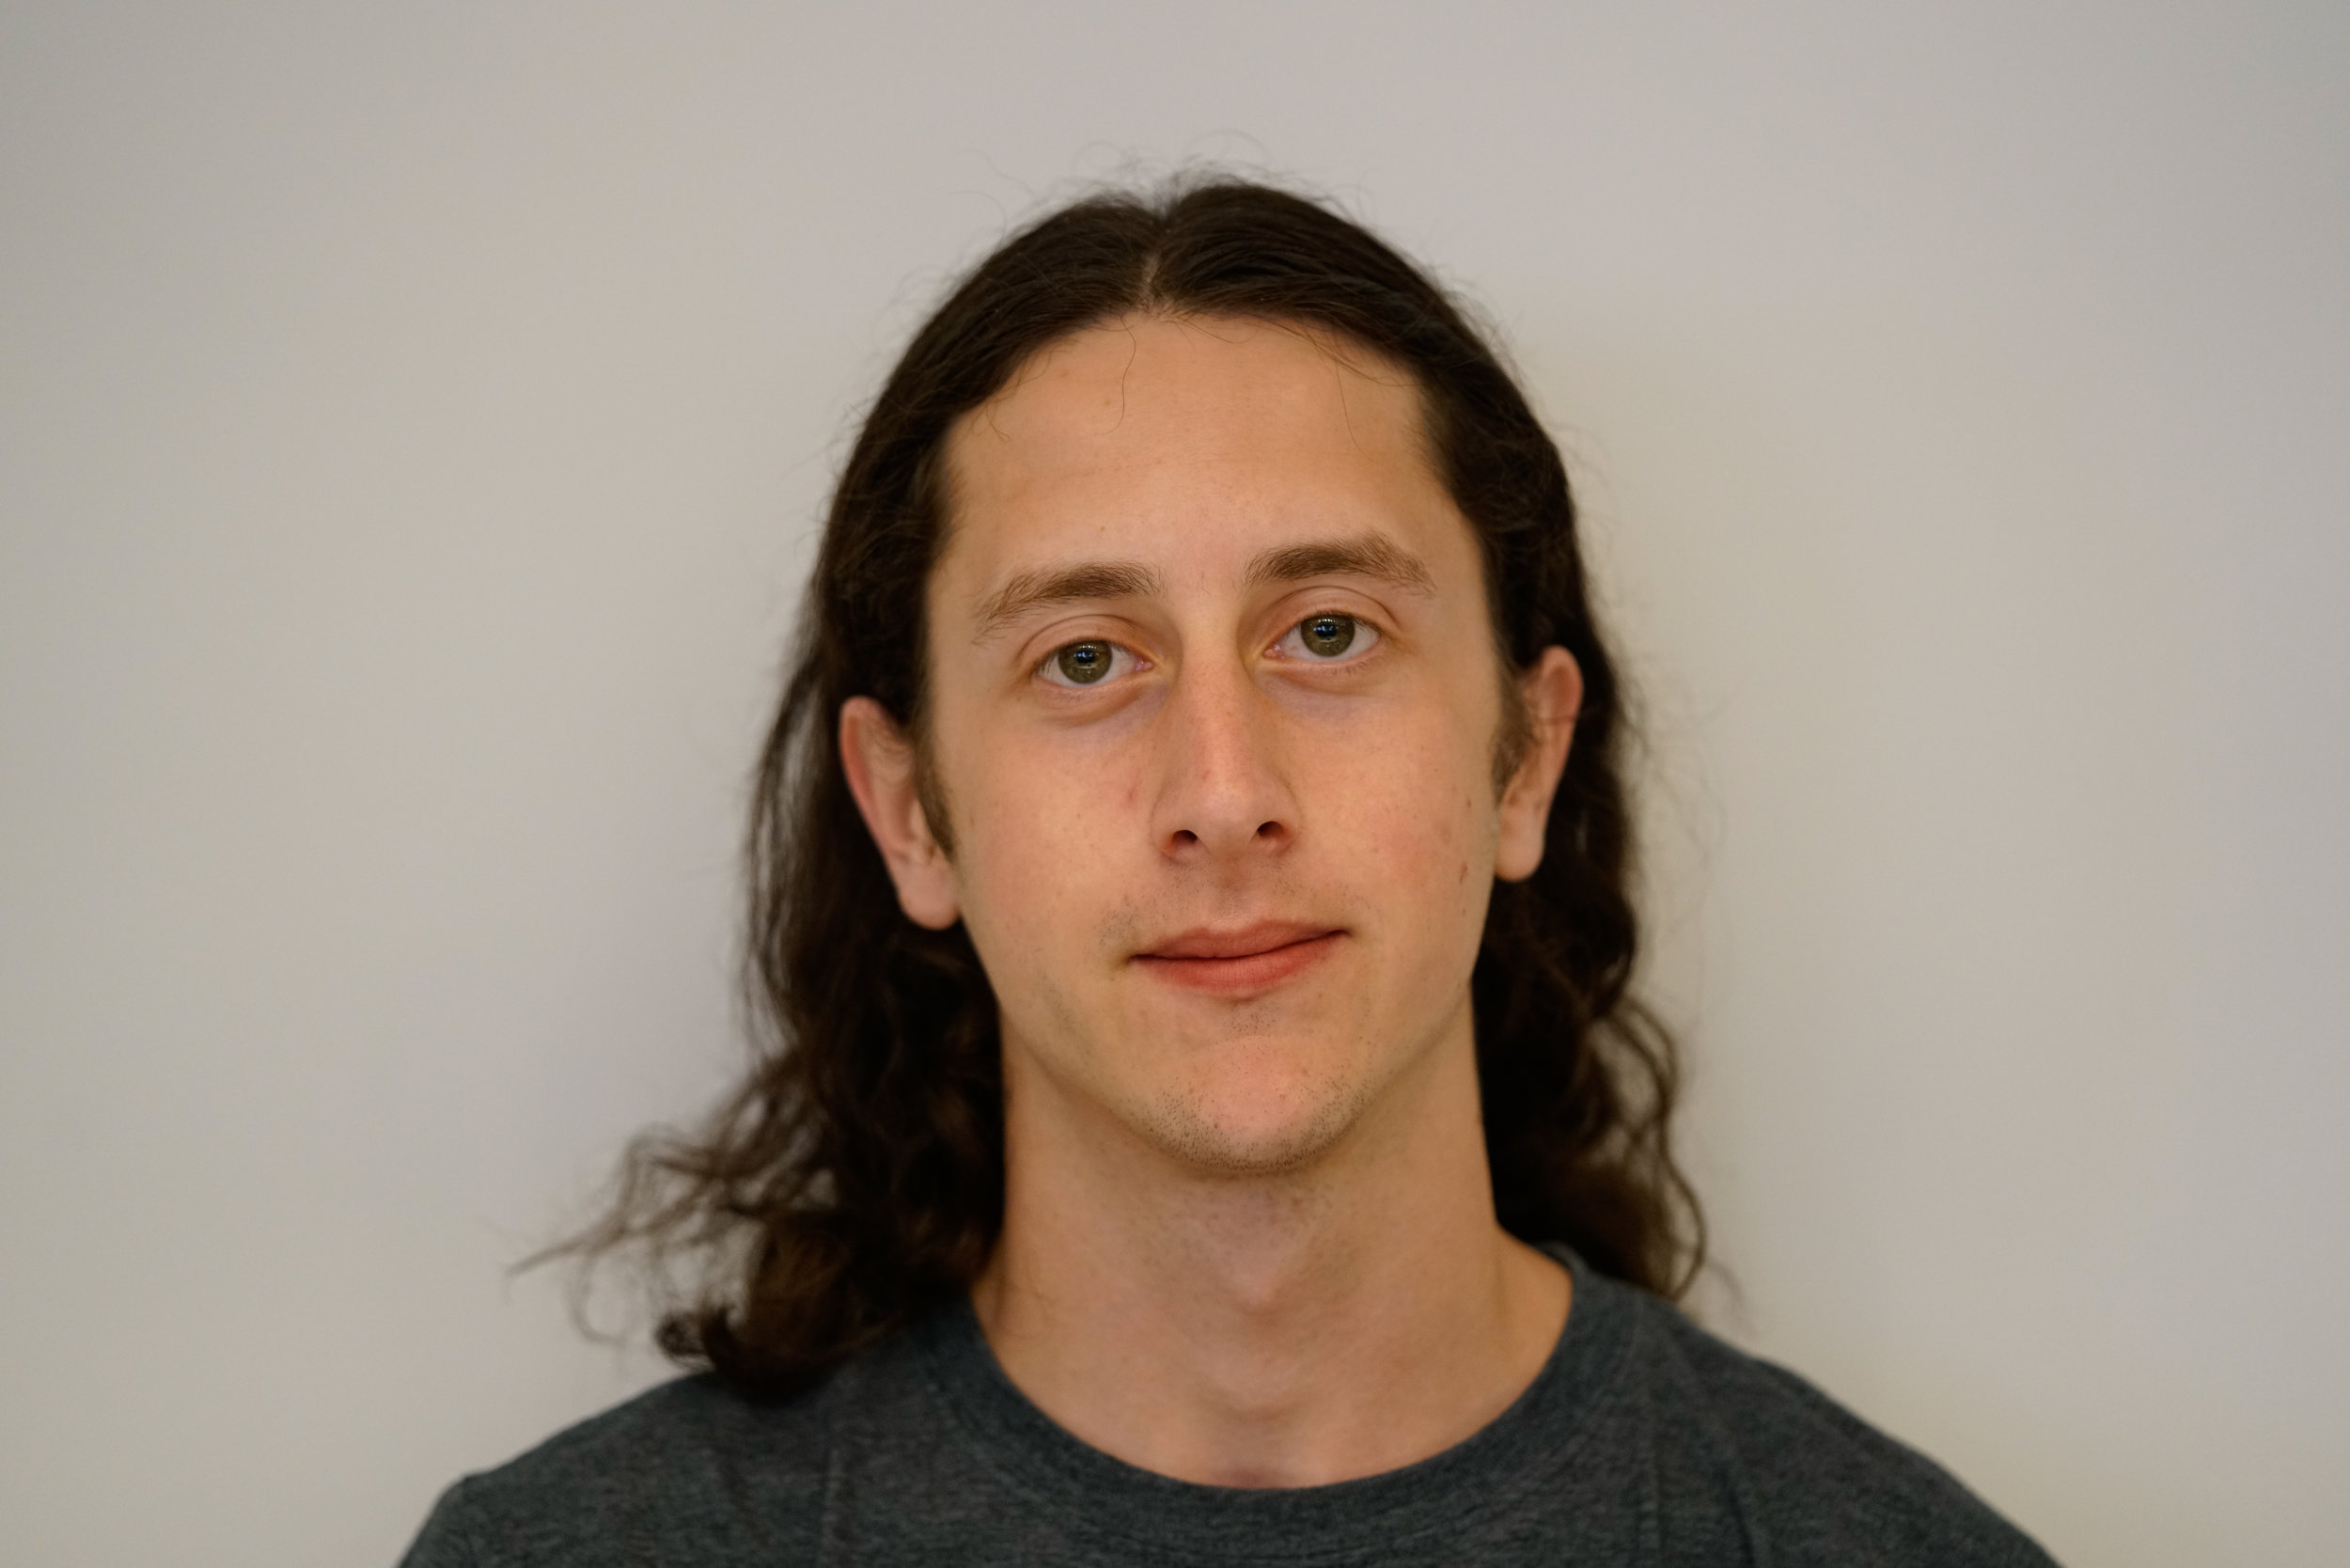 Aidan Hyman - Developer - Aidan is a co-founder and CEO of ChainSafe Systems an Ethereum R&D firm. Aidan taught himself web development and is a big advocate for open source projects and code. In addition, Aidan is a Certified Scrum Master and oversees all of ChainSafe's work. Some of ChainSafe's projects include a Javascript implementation of the Beacon chain, a bridge that connects any Ethereum Virtual Machine-based blockchains using native fuel or any token, and a mechanism for incentivizing full nodes. For fun Aidan likes to read about economic theory while wearing homemade Linux hats. Learn more about his work at github.com/ChainSafe